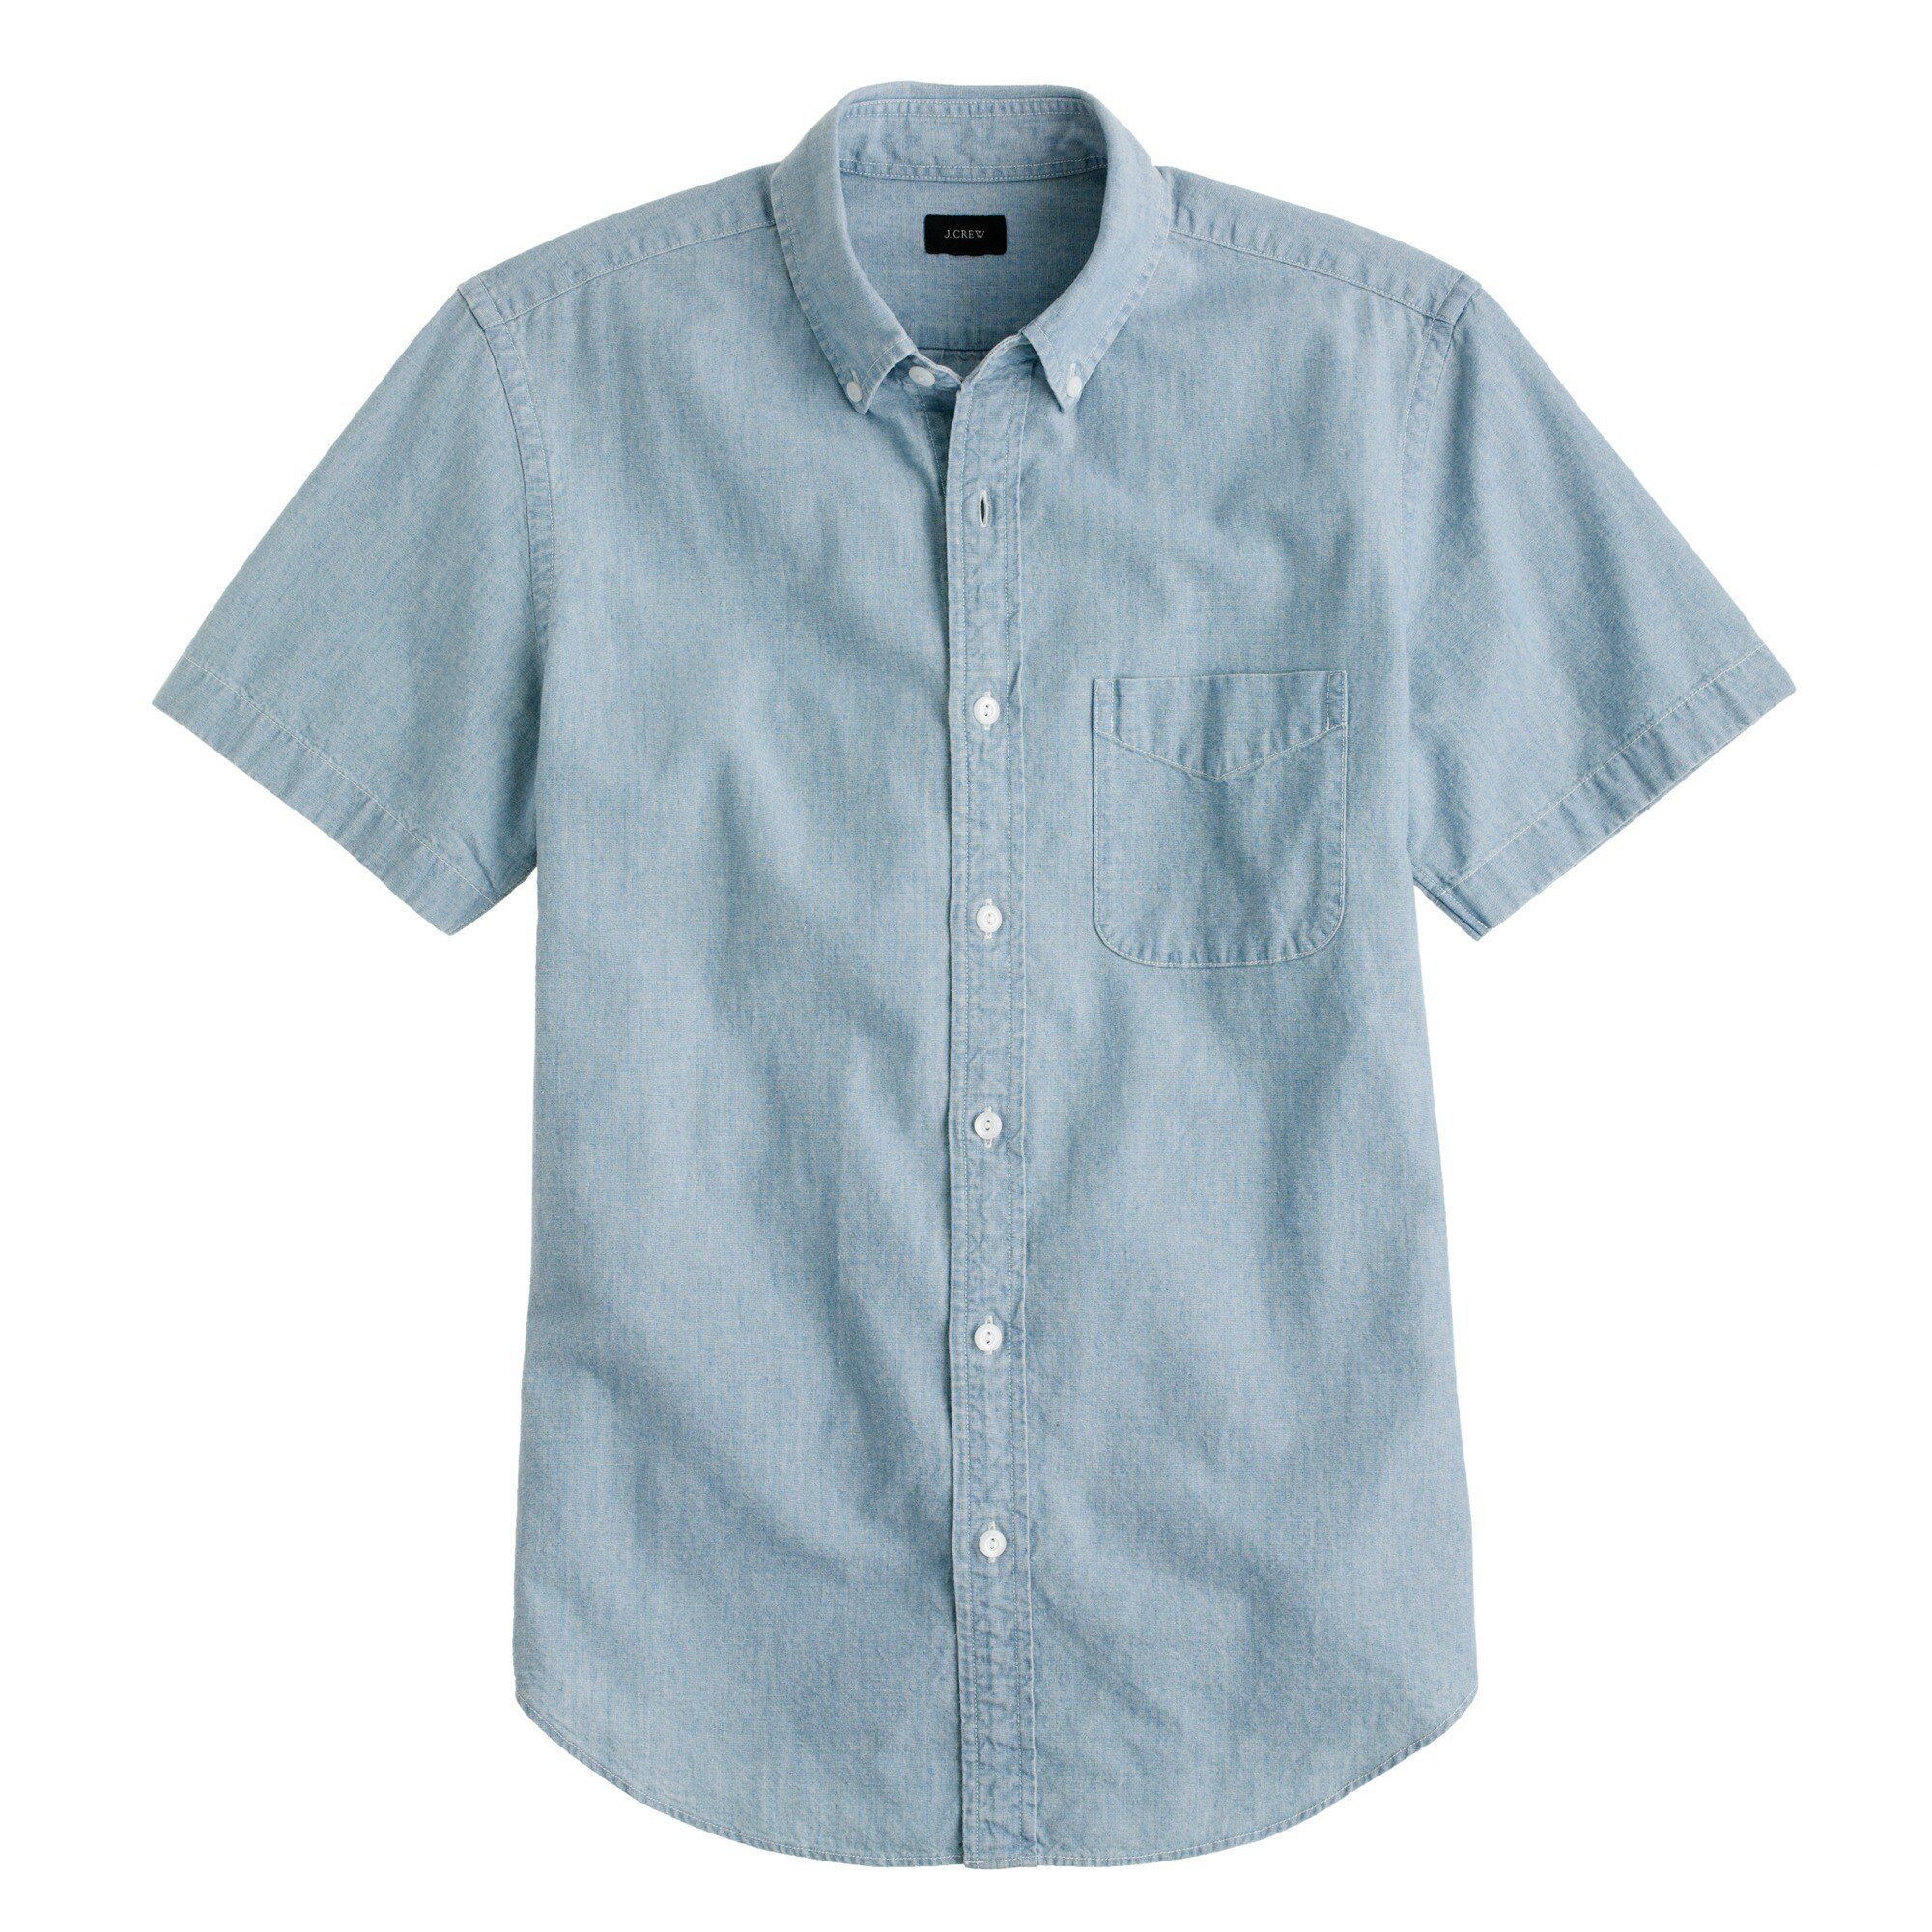 Image 2 for Short-sleeve shirt in Japanese indigo chambray